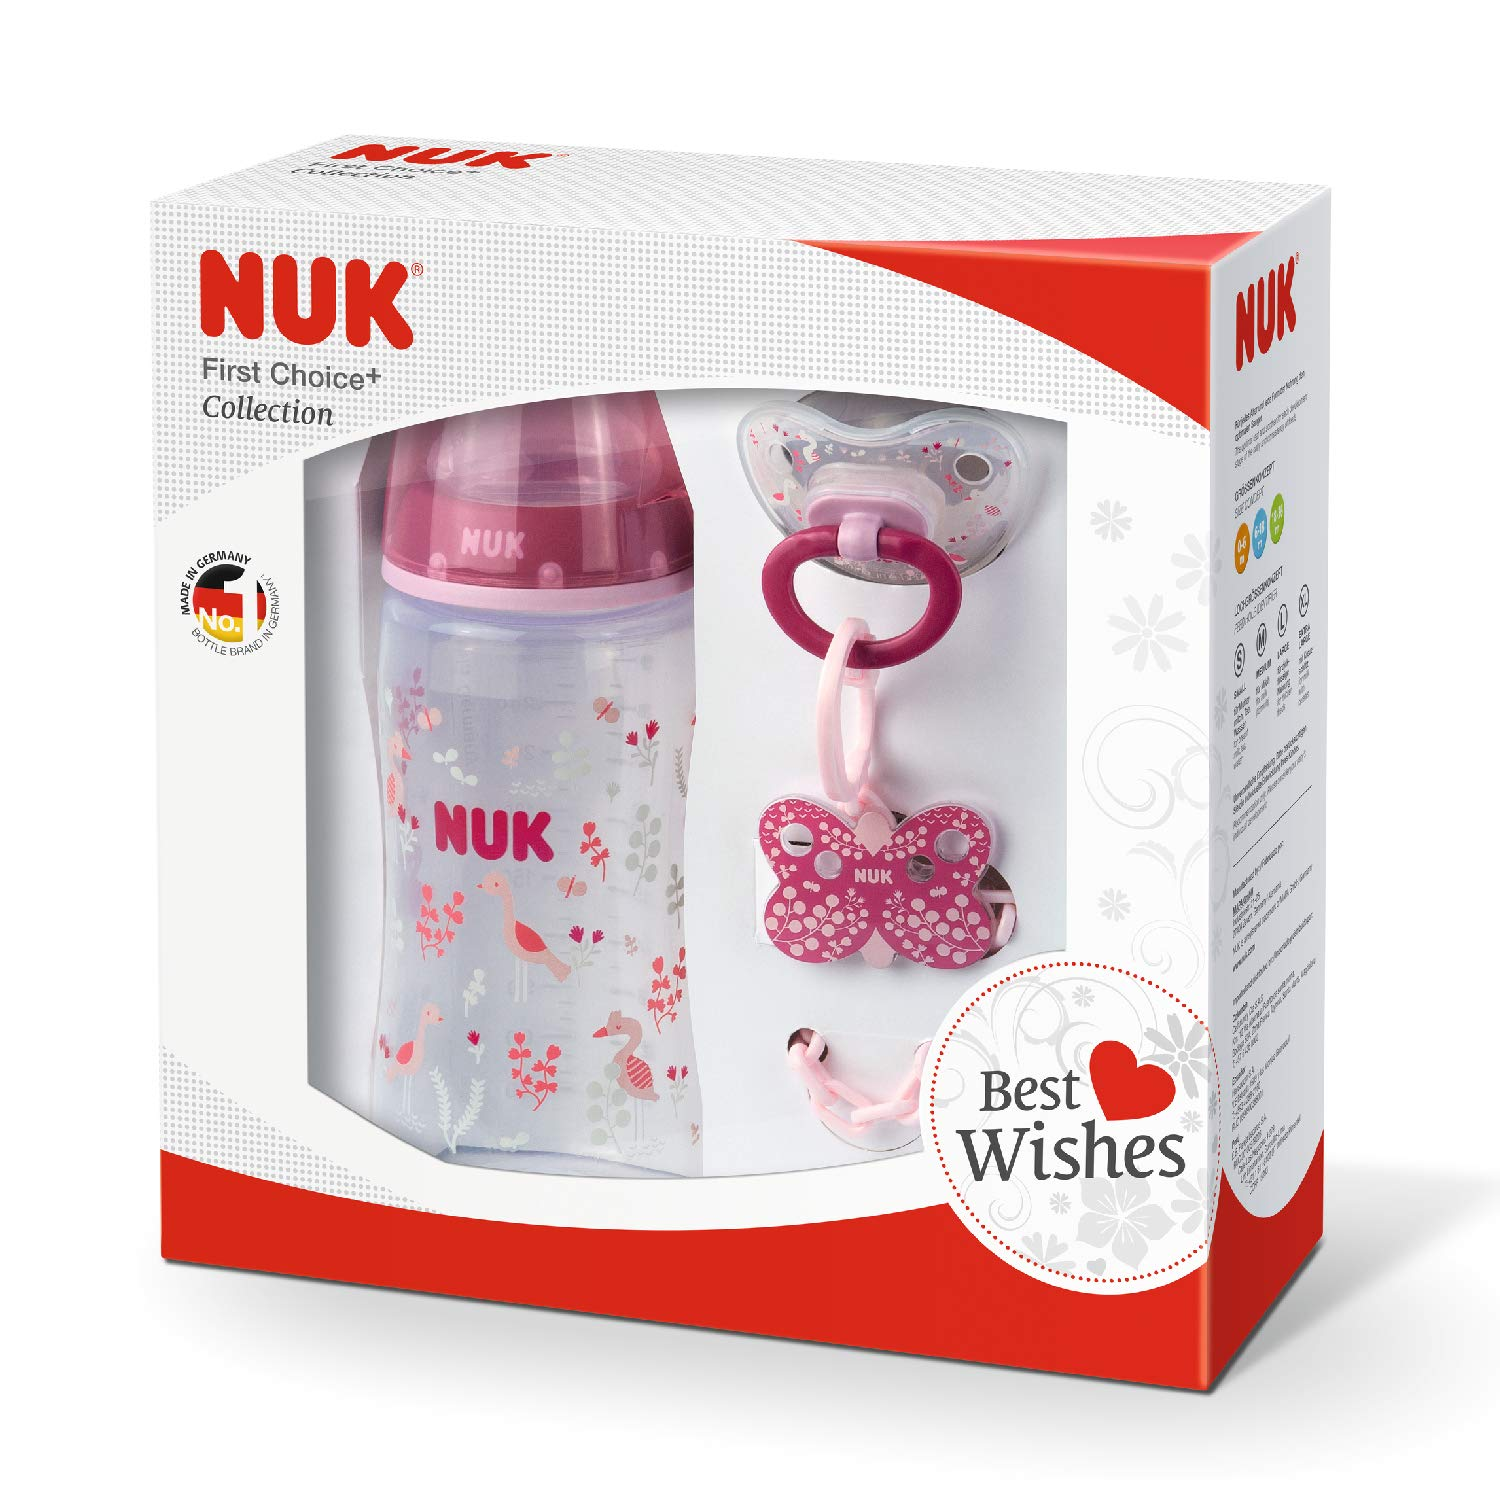 Amazon.com: NUK First Choice Plus Set, juego de botella con ...